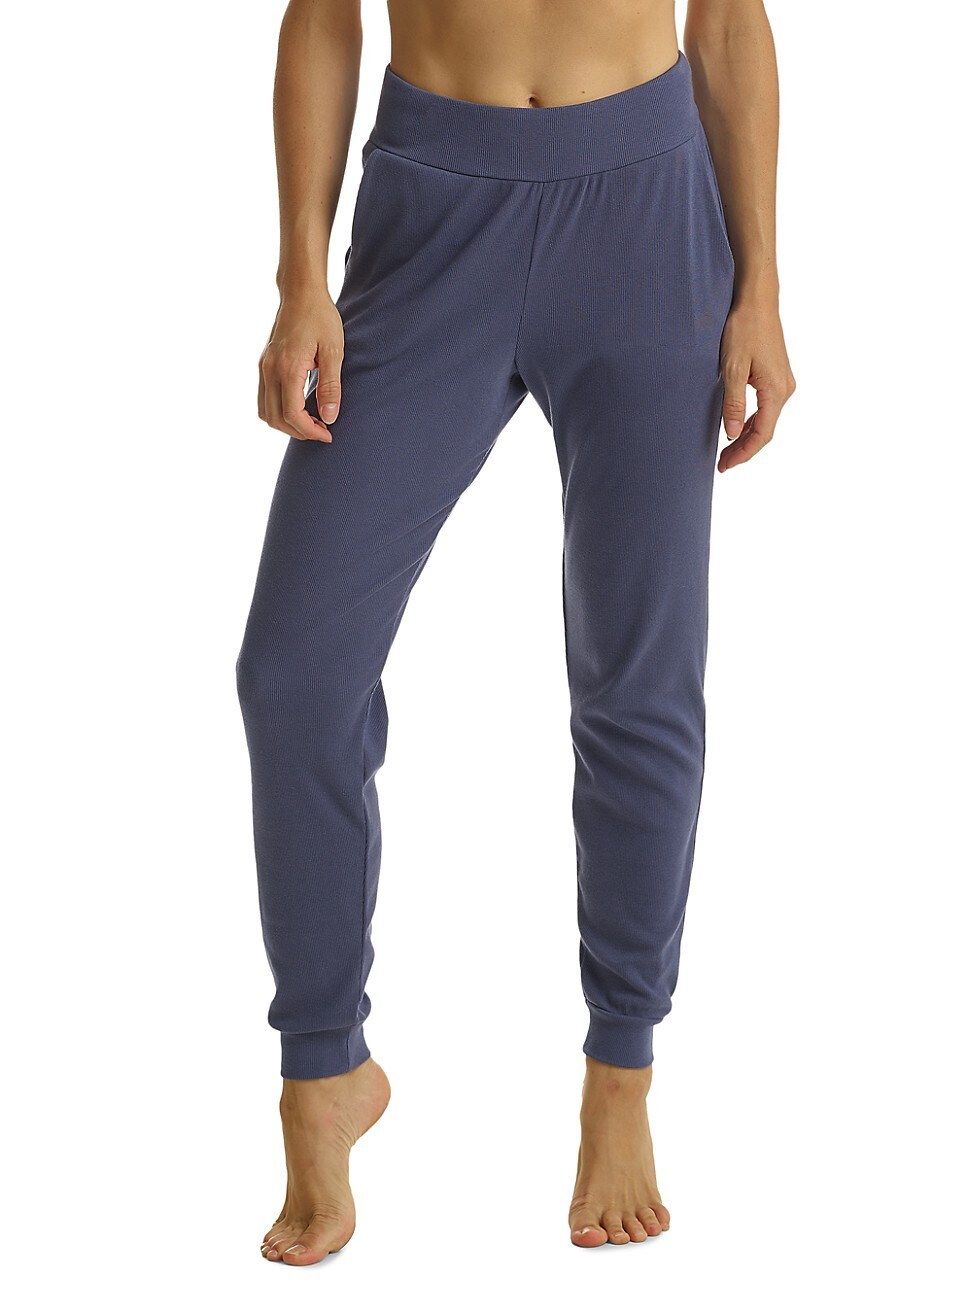 Commando Track pants WOMEN'S LUXURY RIBBED JOGGERS